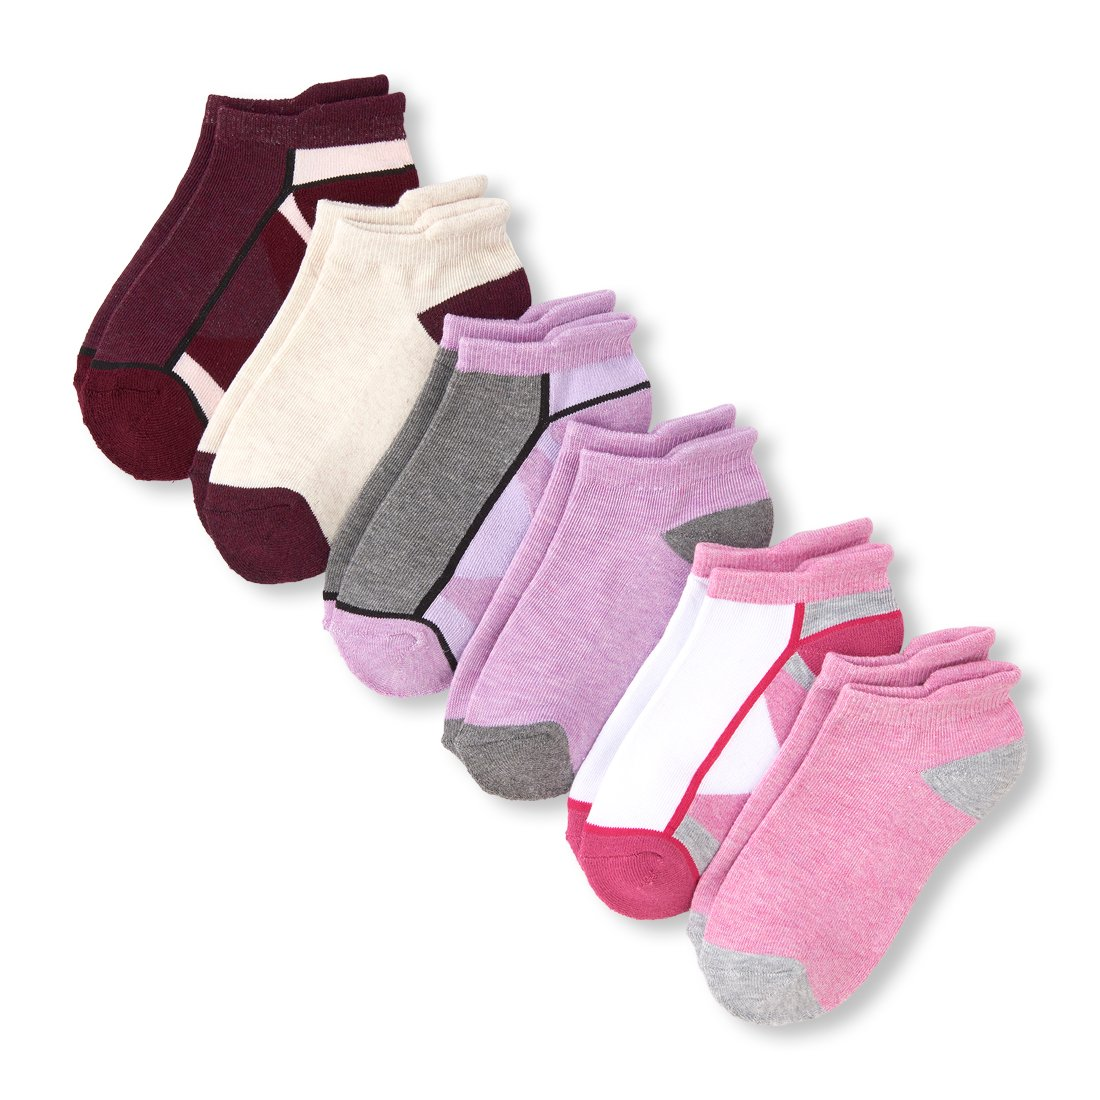 The Children's Place Big Girls' 6 Pack Sporty Ankle Sock, Multi CLR, S 11-13